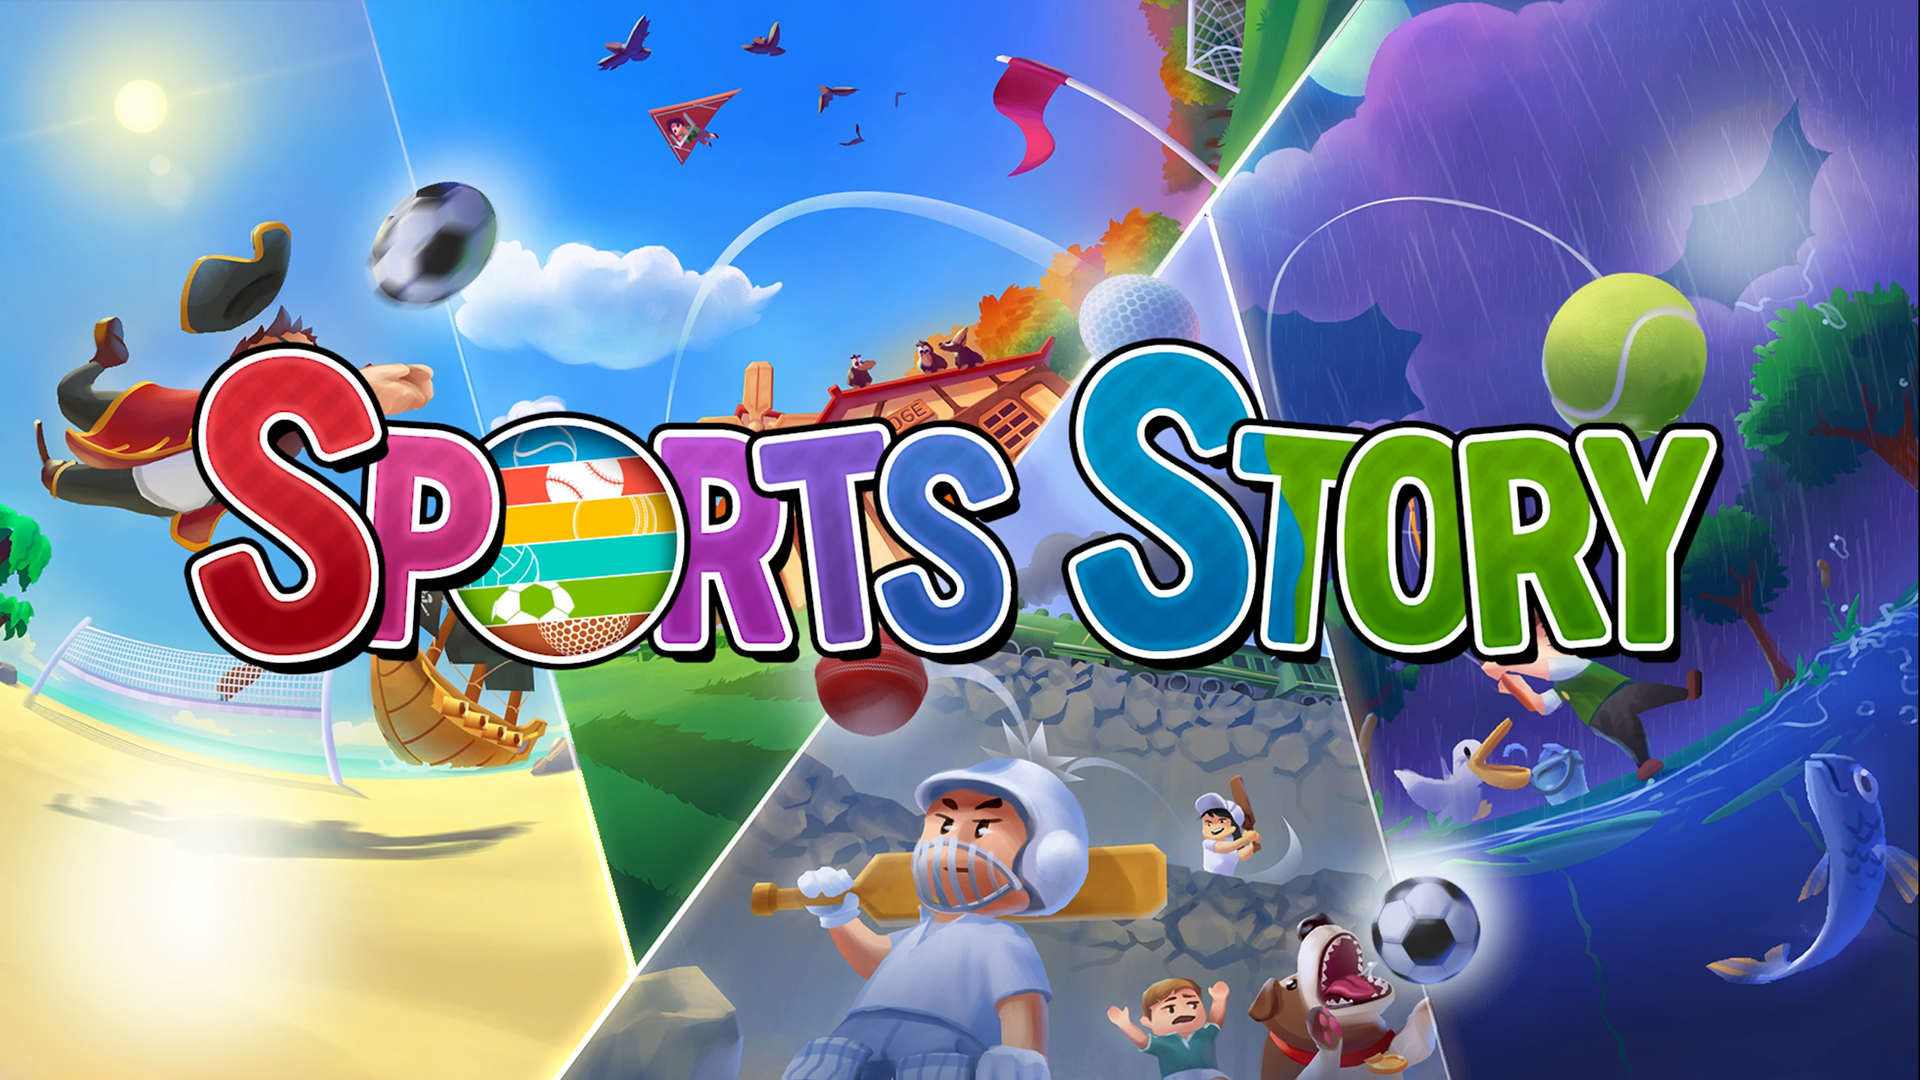 The logo of Sports Story in the middle with various sports shown behind: volleyball, hand gliding, golf, soccer, baseball, cricket, fishing and tennis.